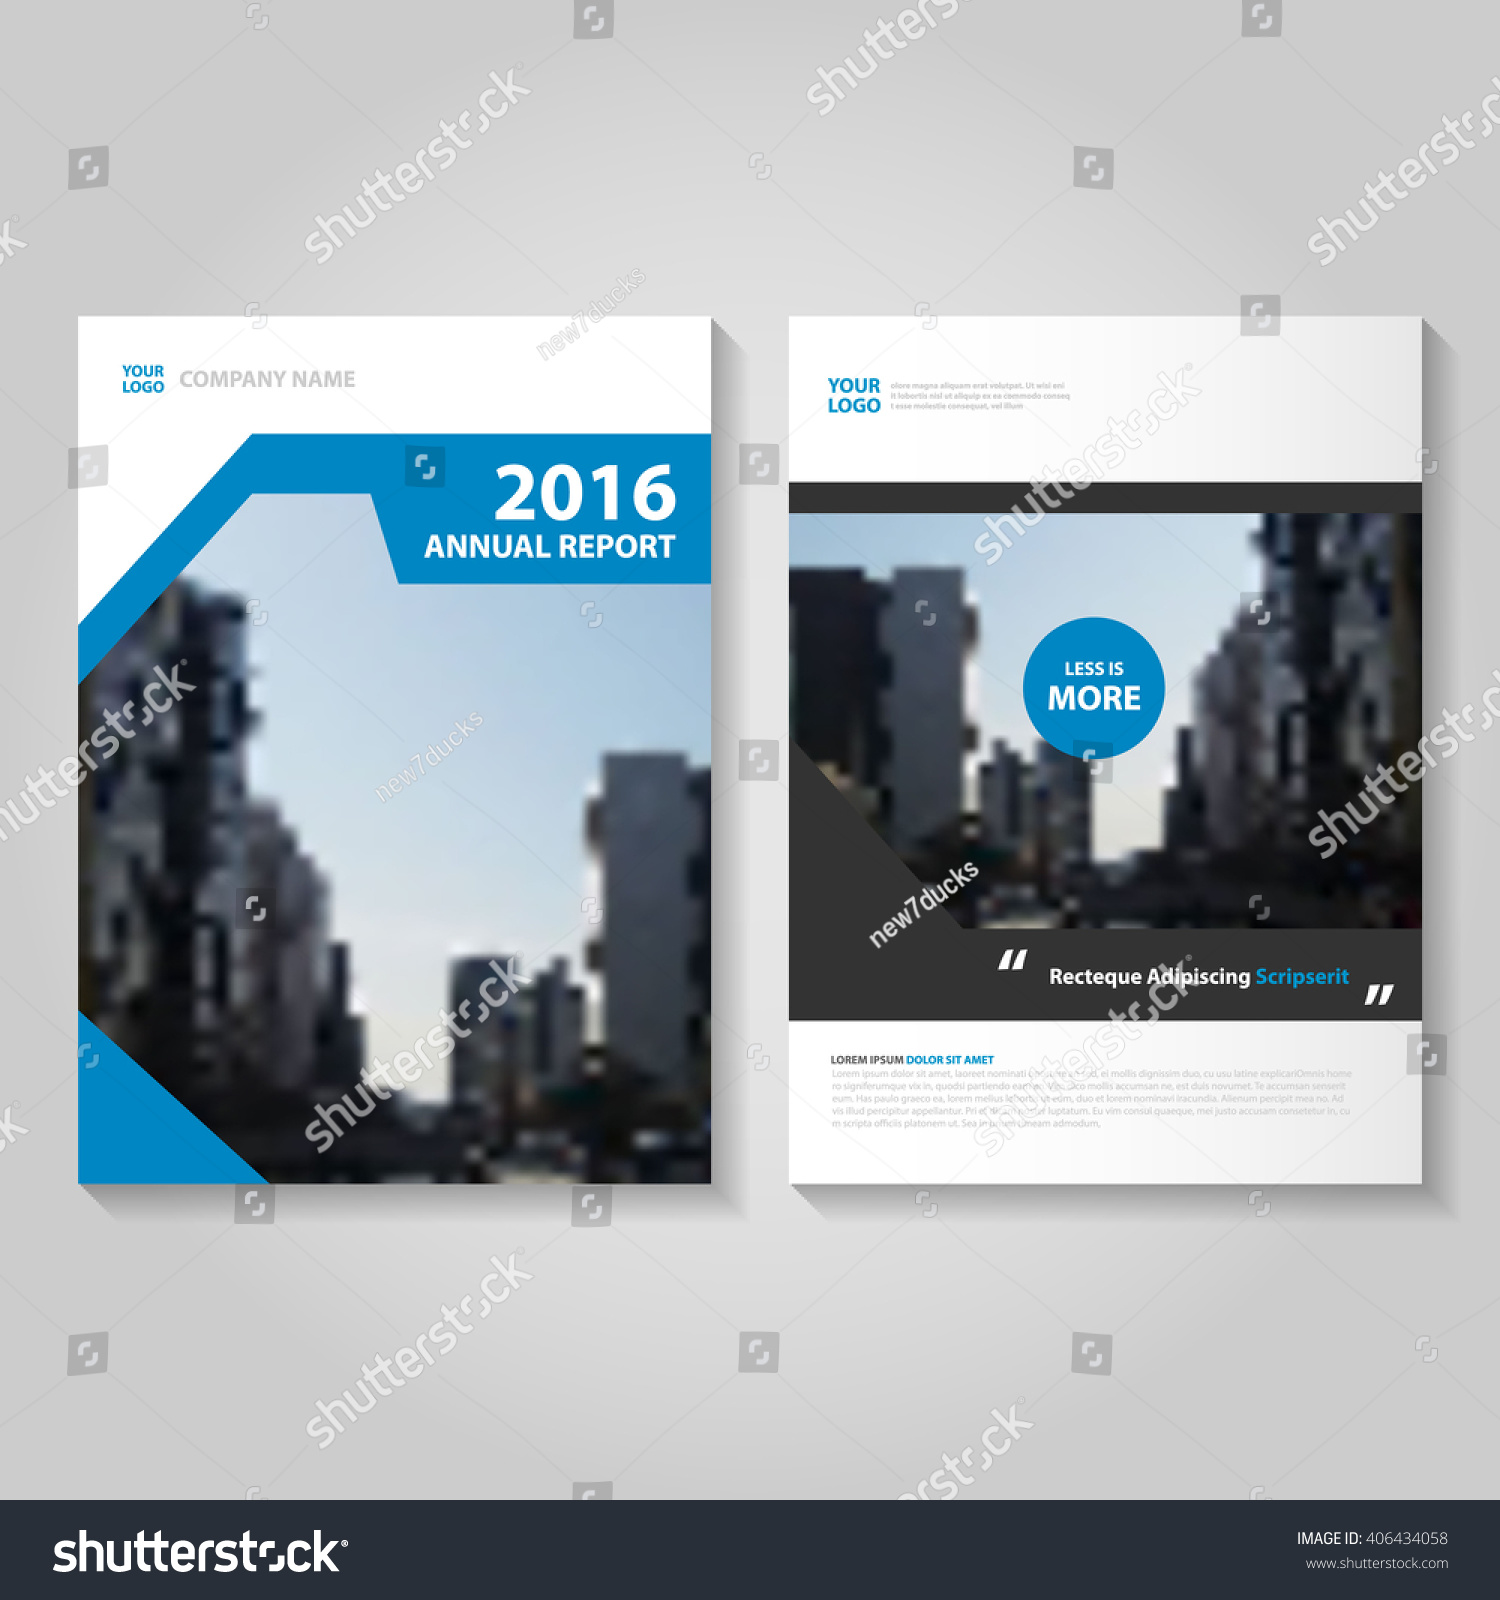 Royaltyfree Elegance Blue Vector annual report 406434058 – Simple Annual Report Template